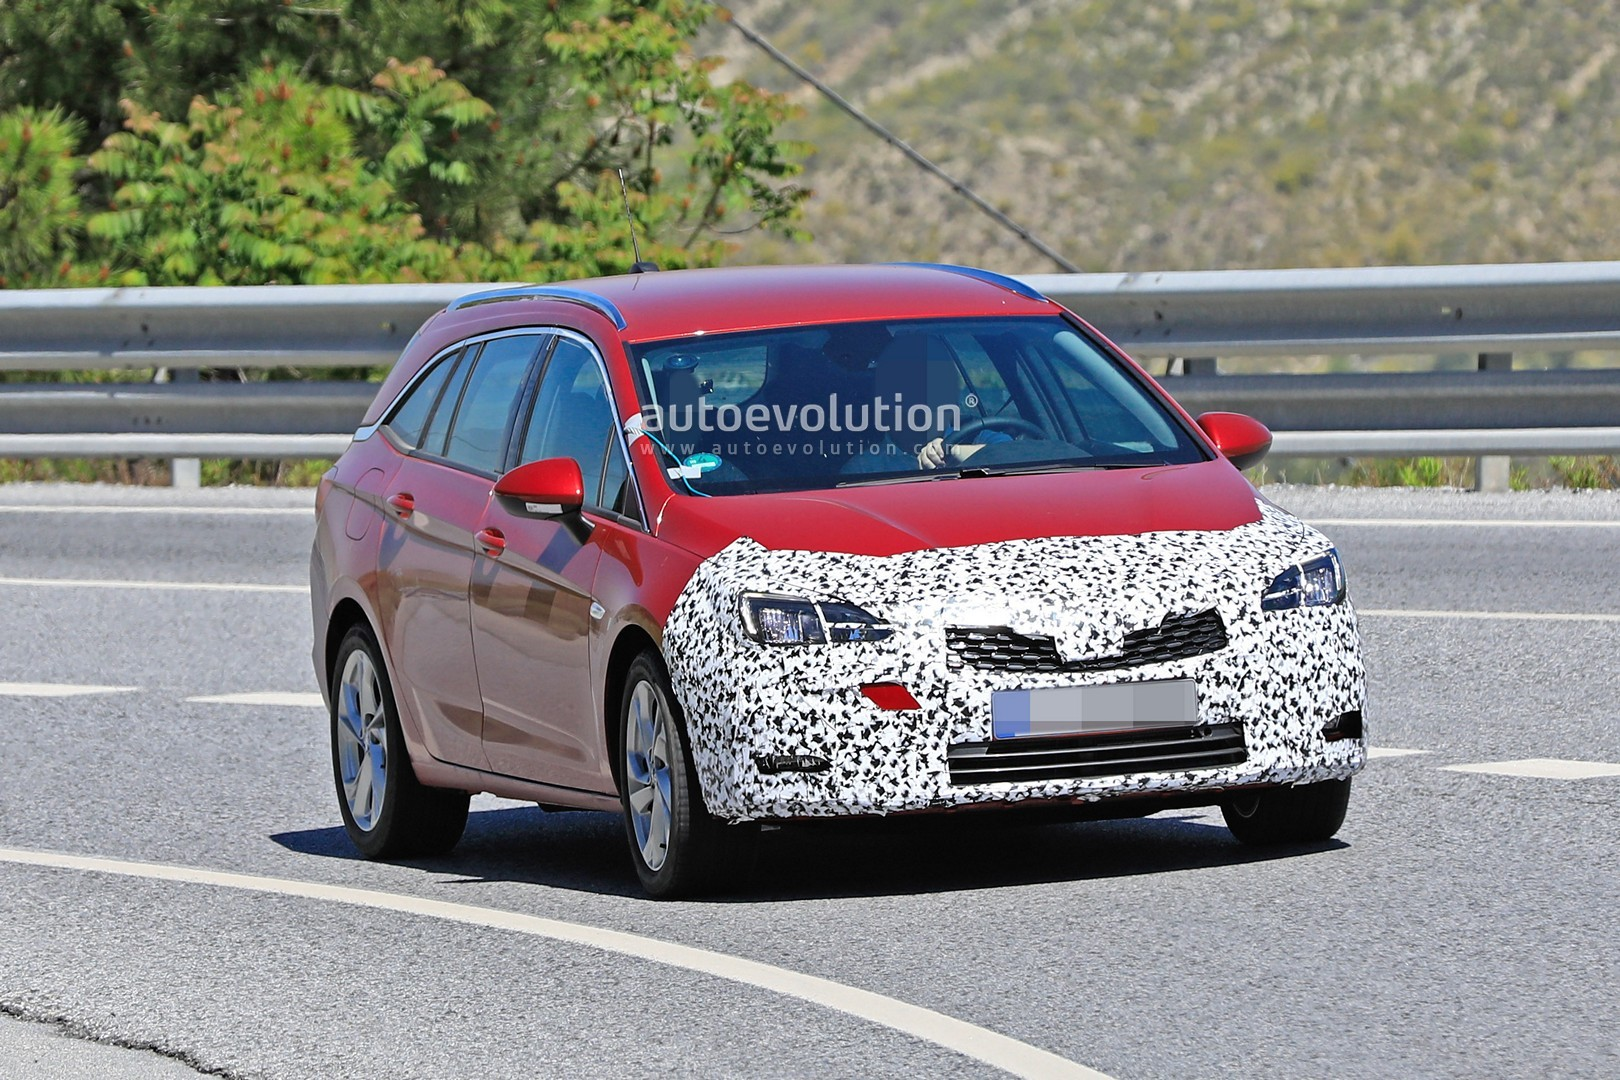 2020 Opel Astra Wagon Spied With Mild Facelift Getting Ready For